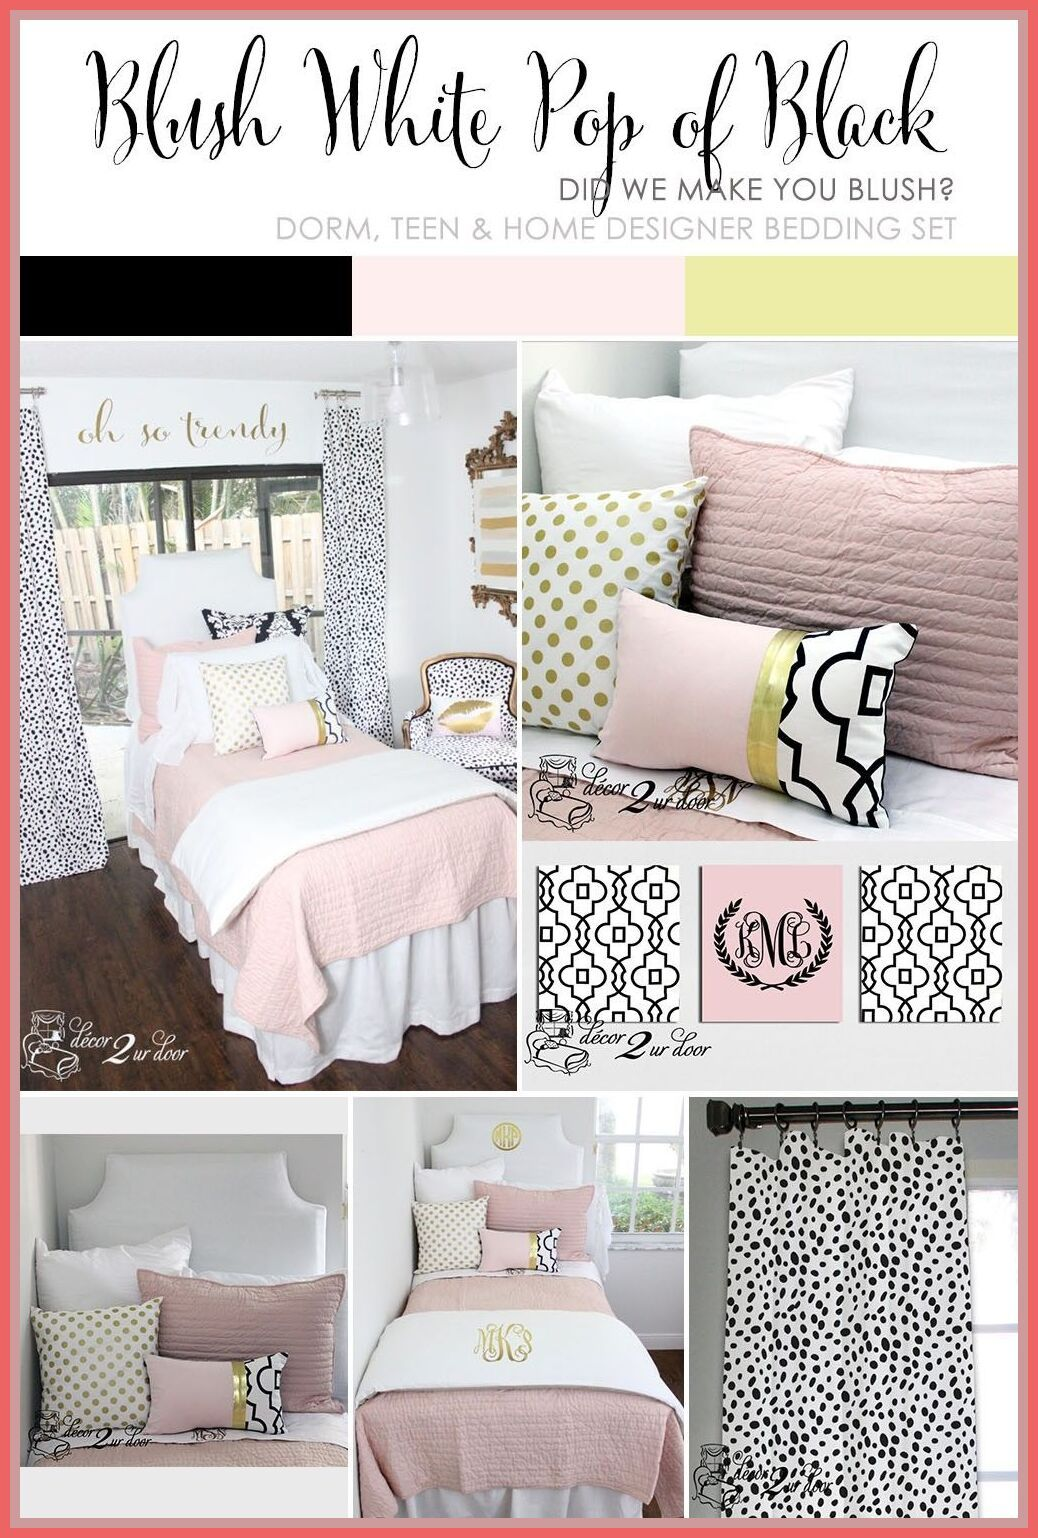 Decorating A Dorm Room Check Out Decor 2 Ur Door For The Latest Dorm Room Decorating Trends We Adore This Blu White Dorm Room Dorm Room Decor Cool Dorm Rooms